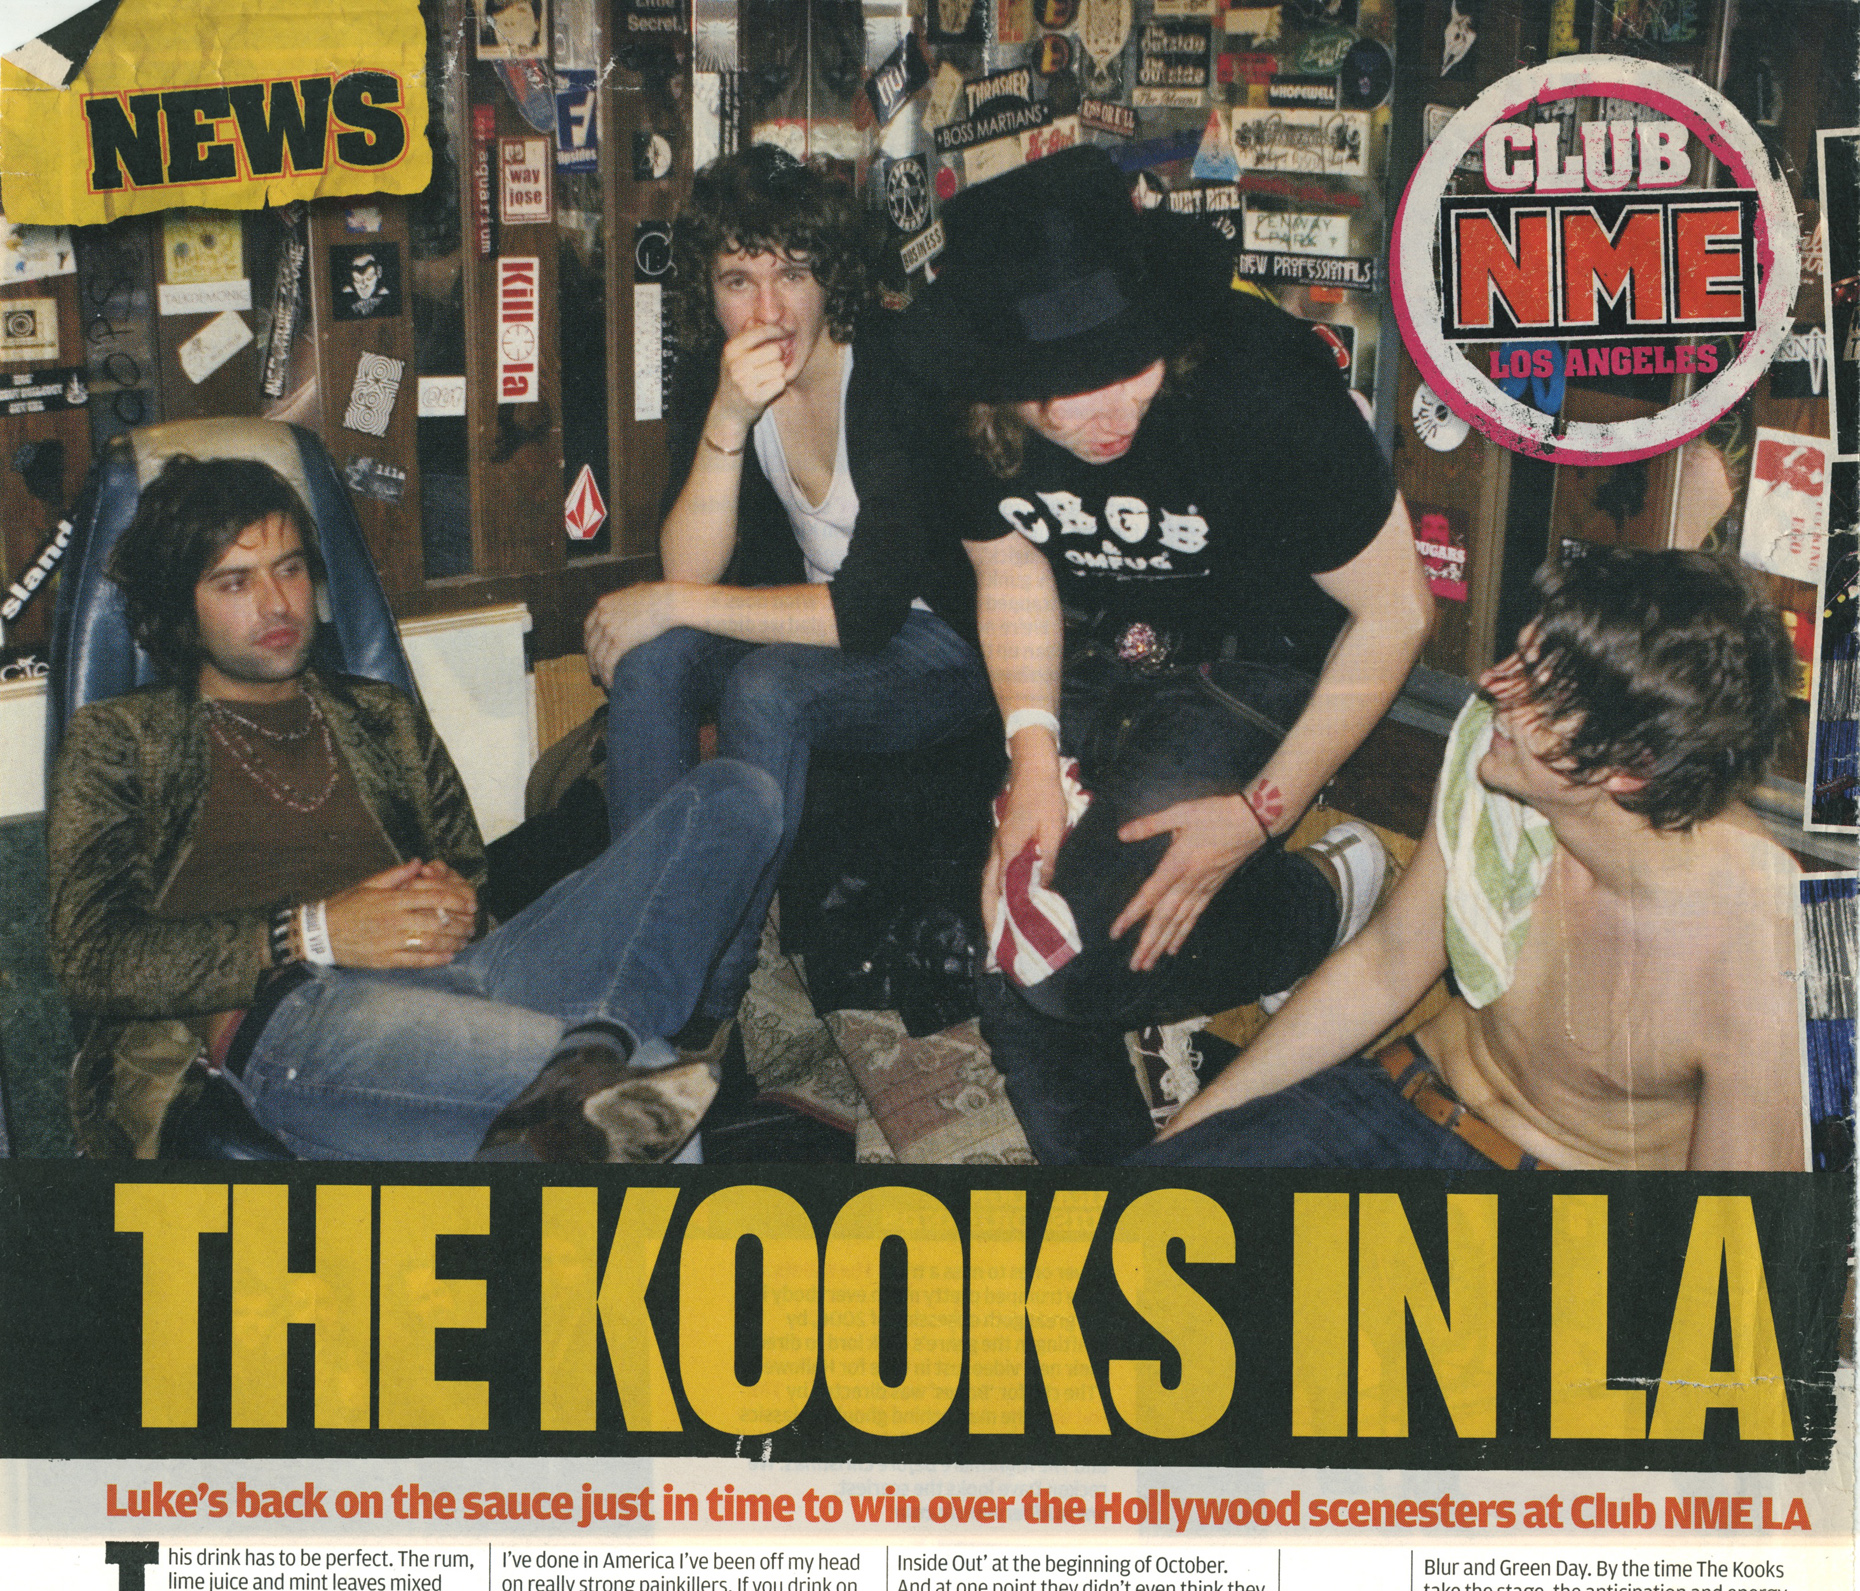 The Kooks by Ashley Haber